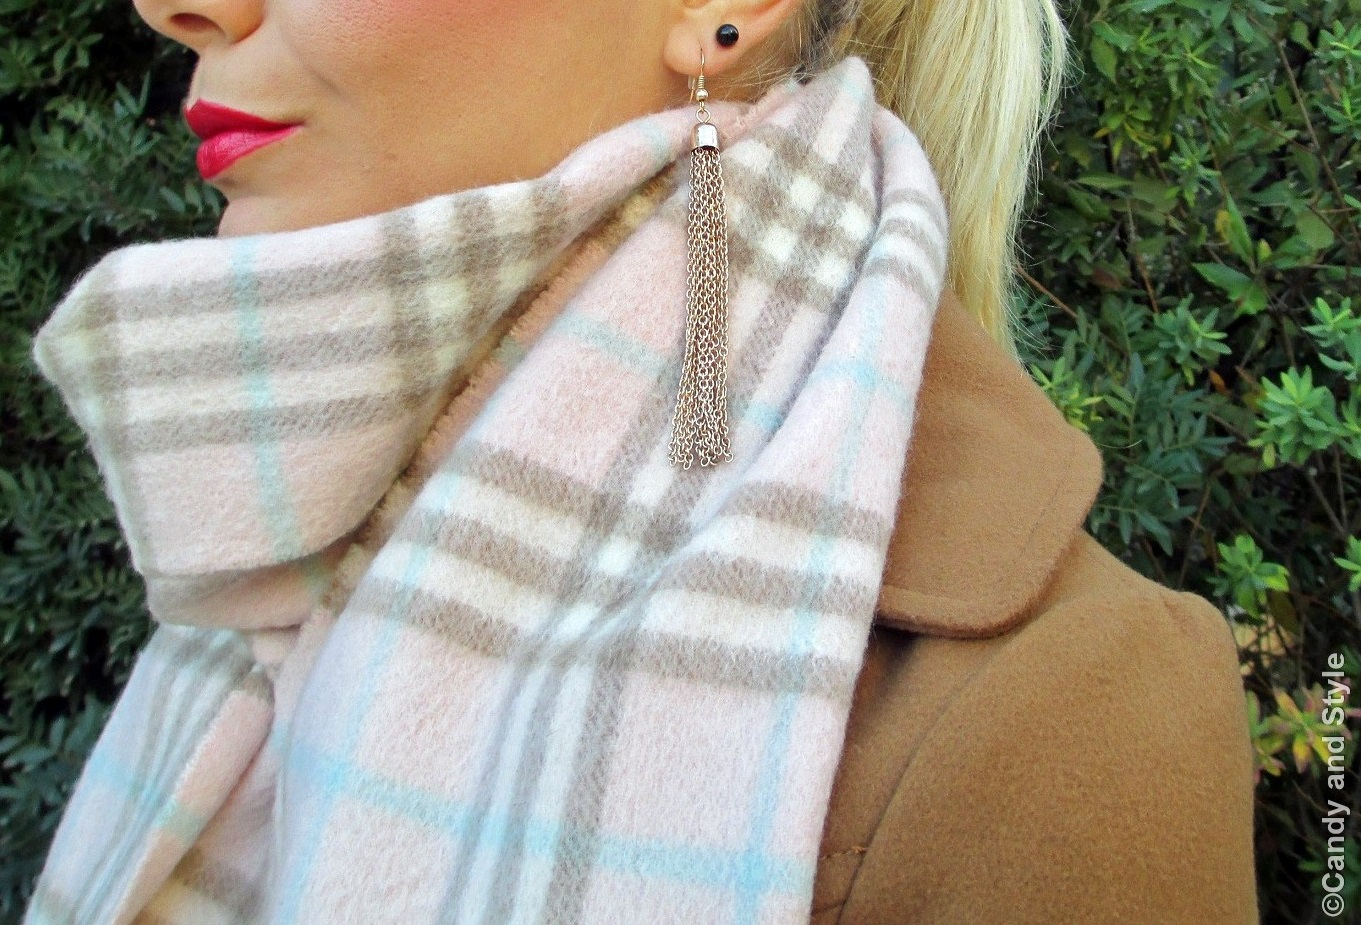 Plaid Scarf - Details